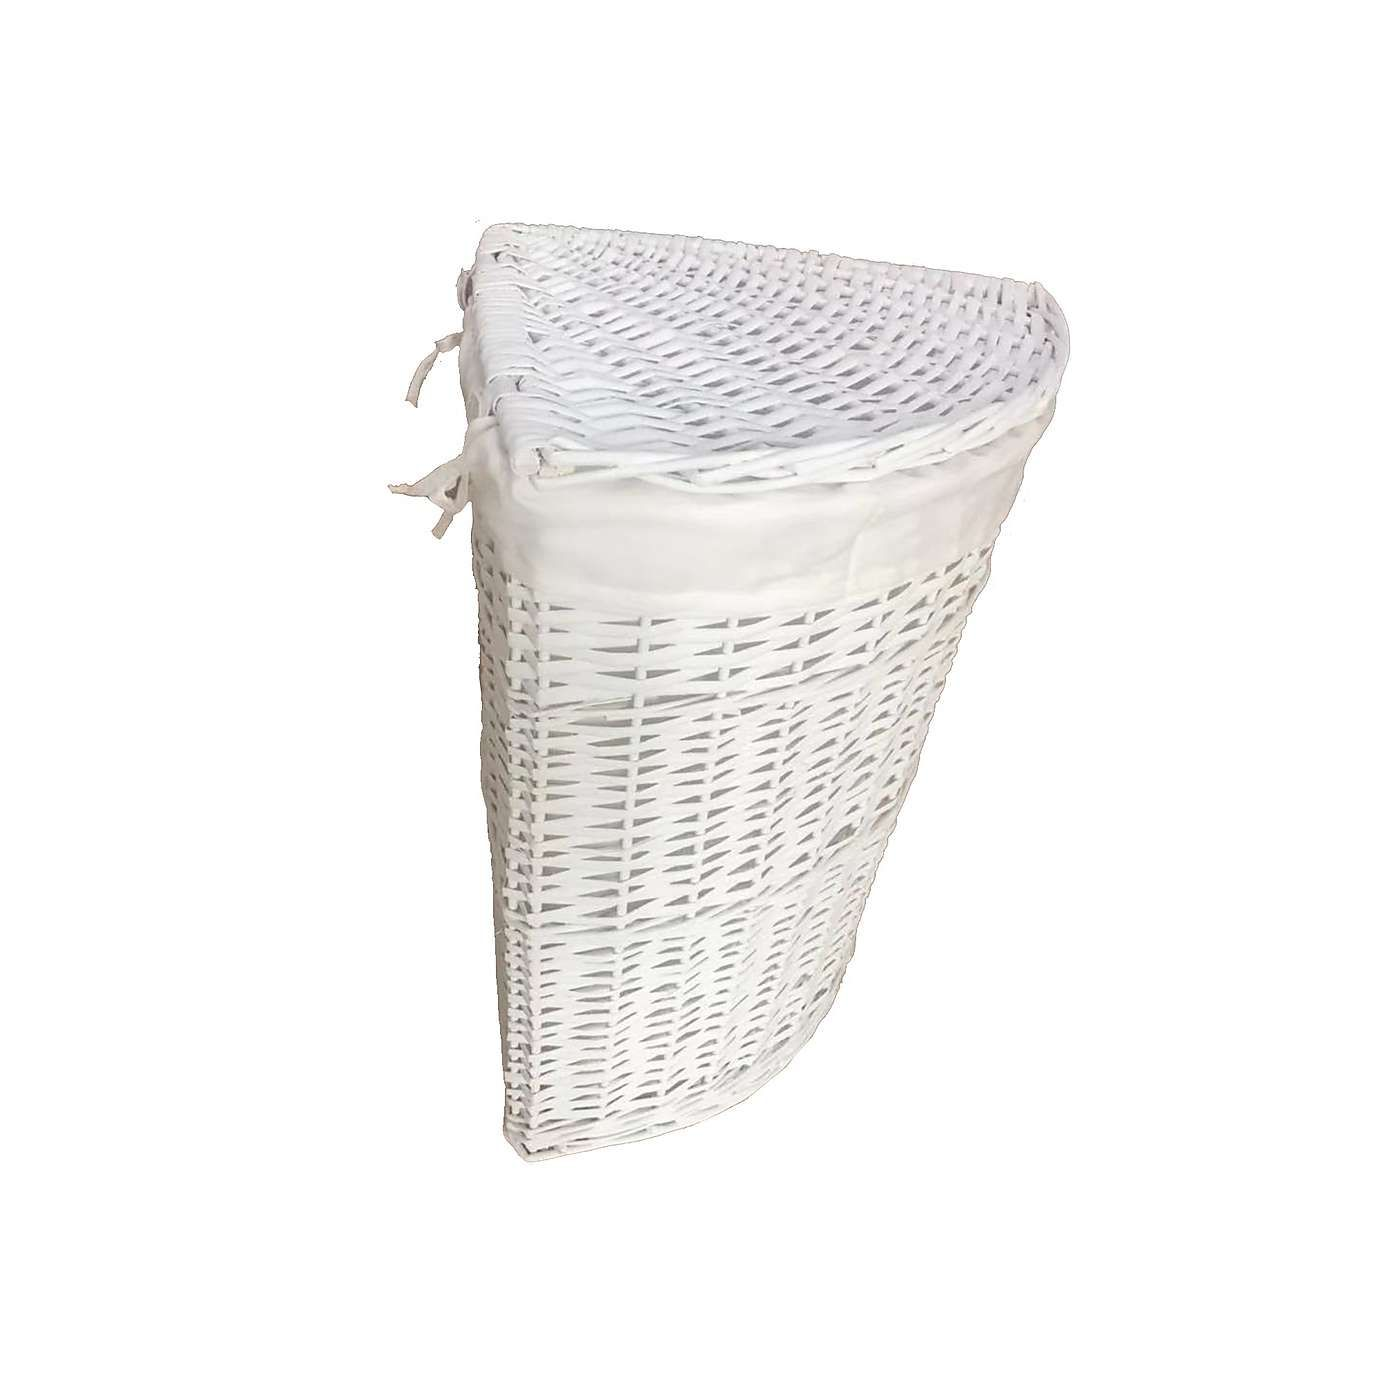 Versailles White Corner Basket Basket Wicker Hamper Storage